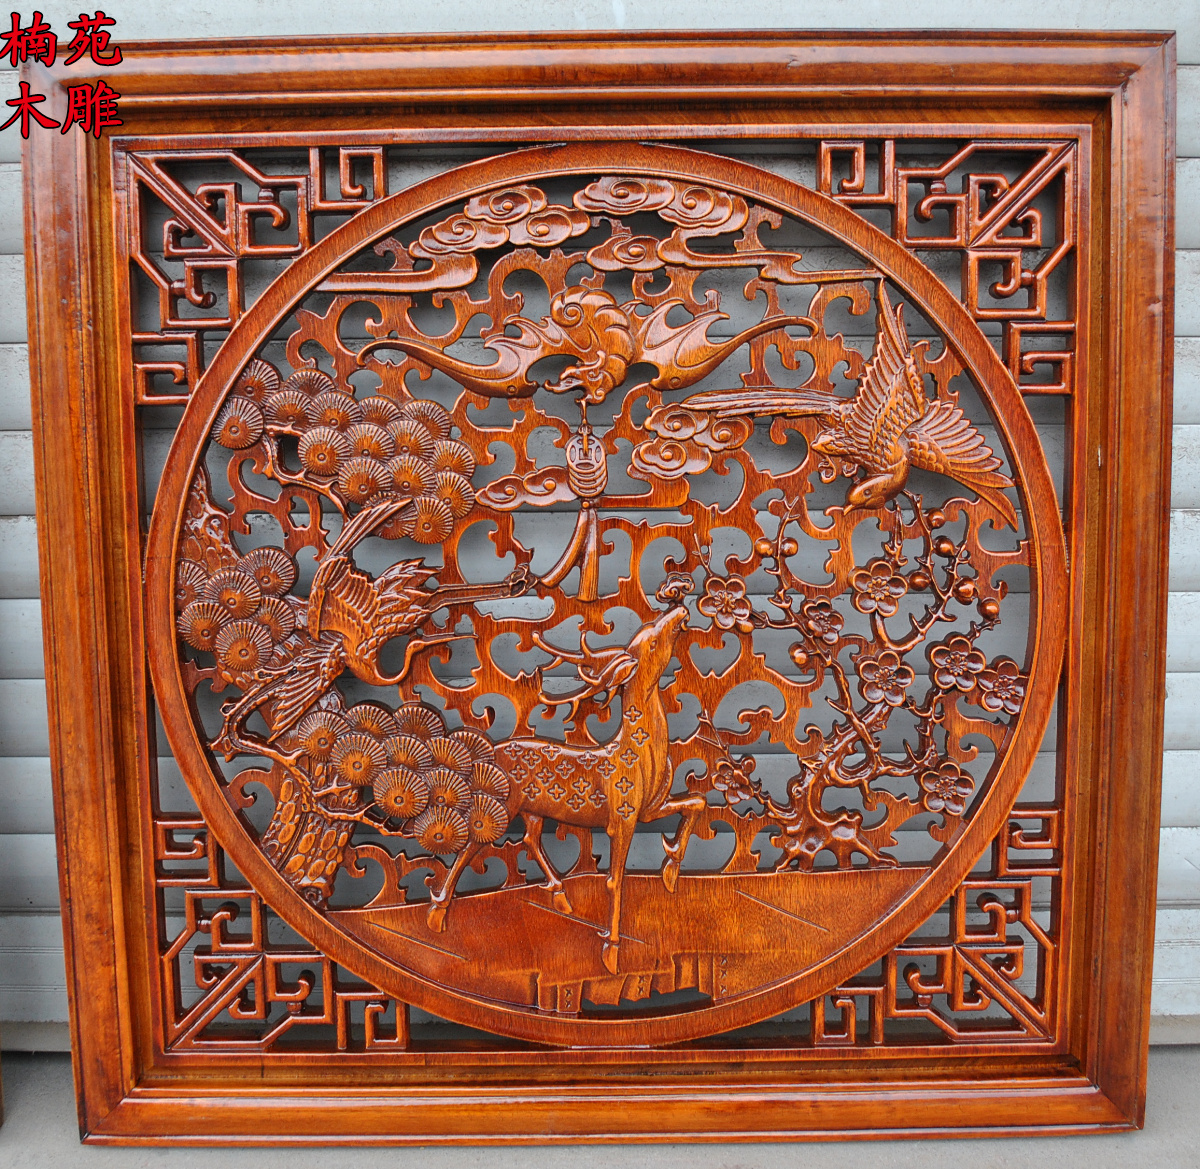 Dongyang wood carving camphor wood carving wood carving pendant antique square guaping chinese background wall hangings gods hi